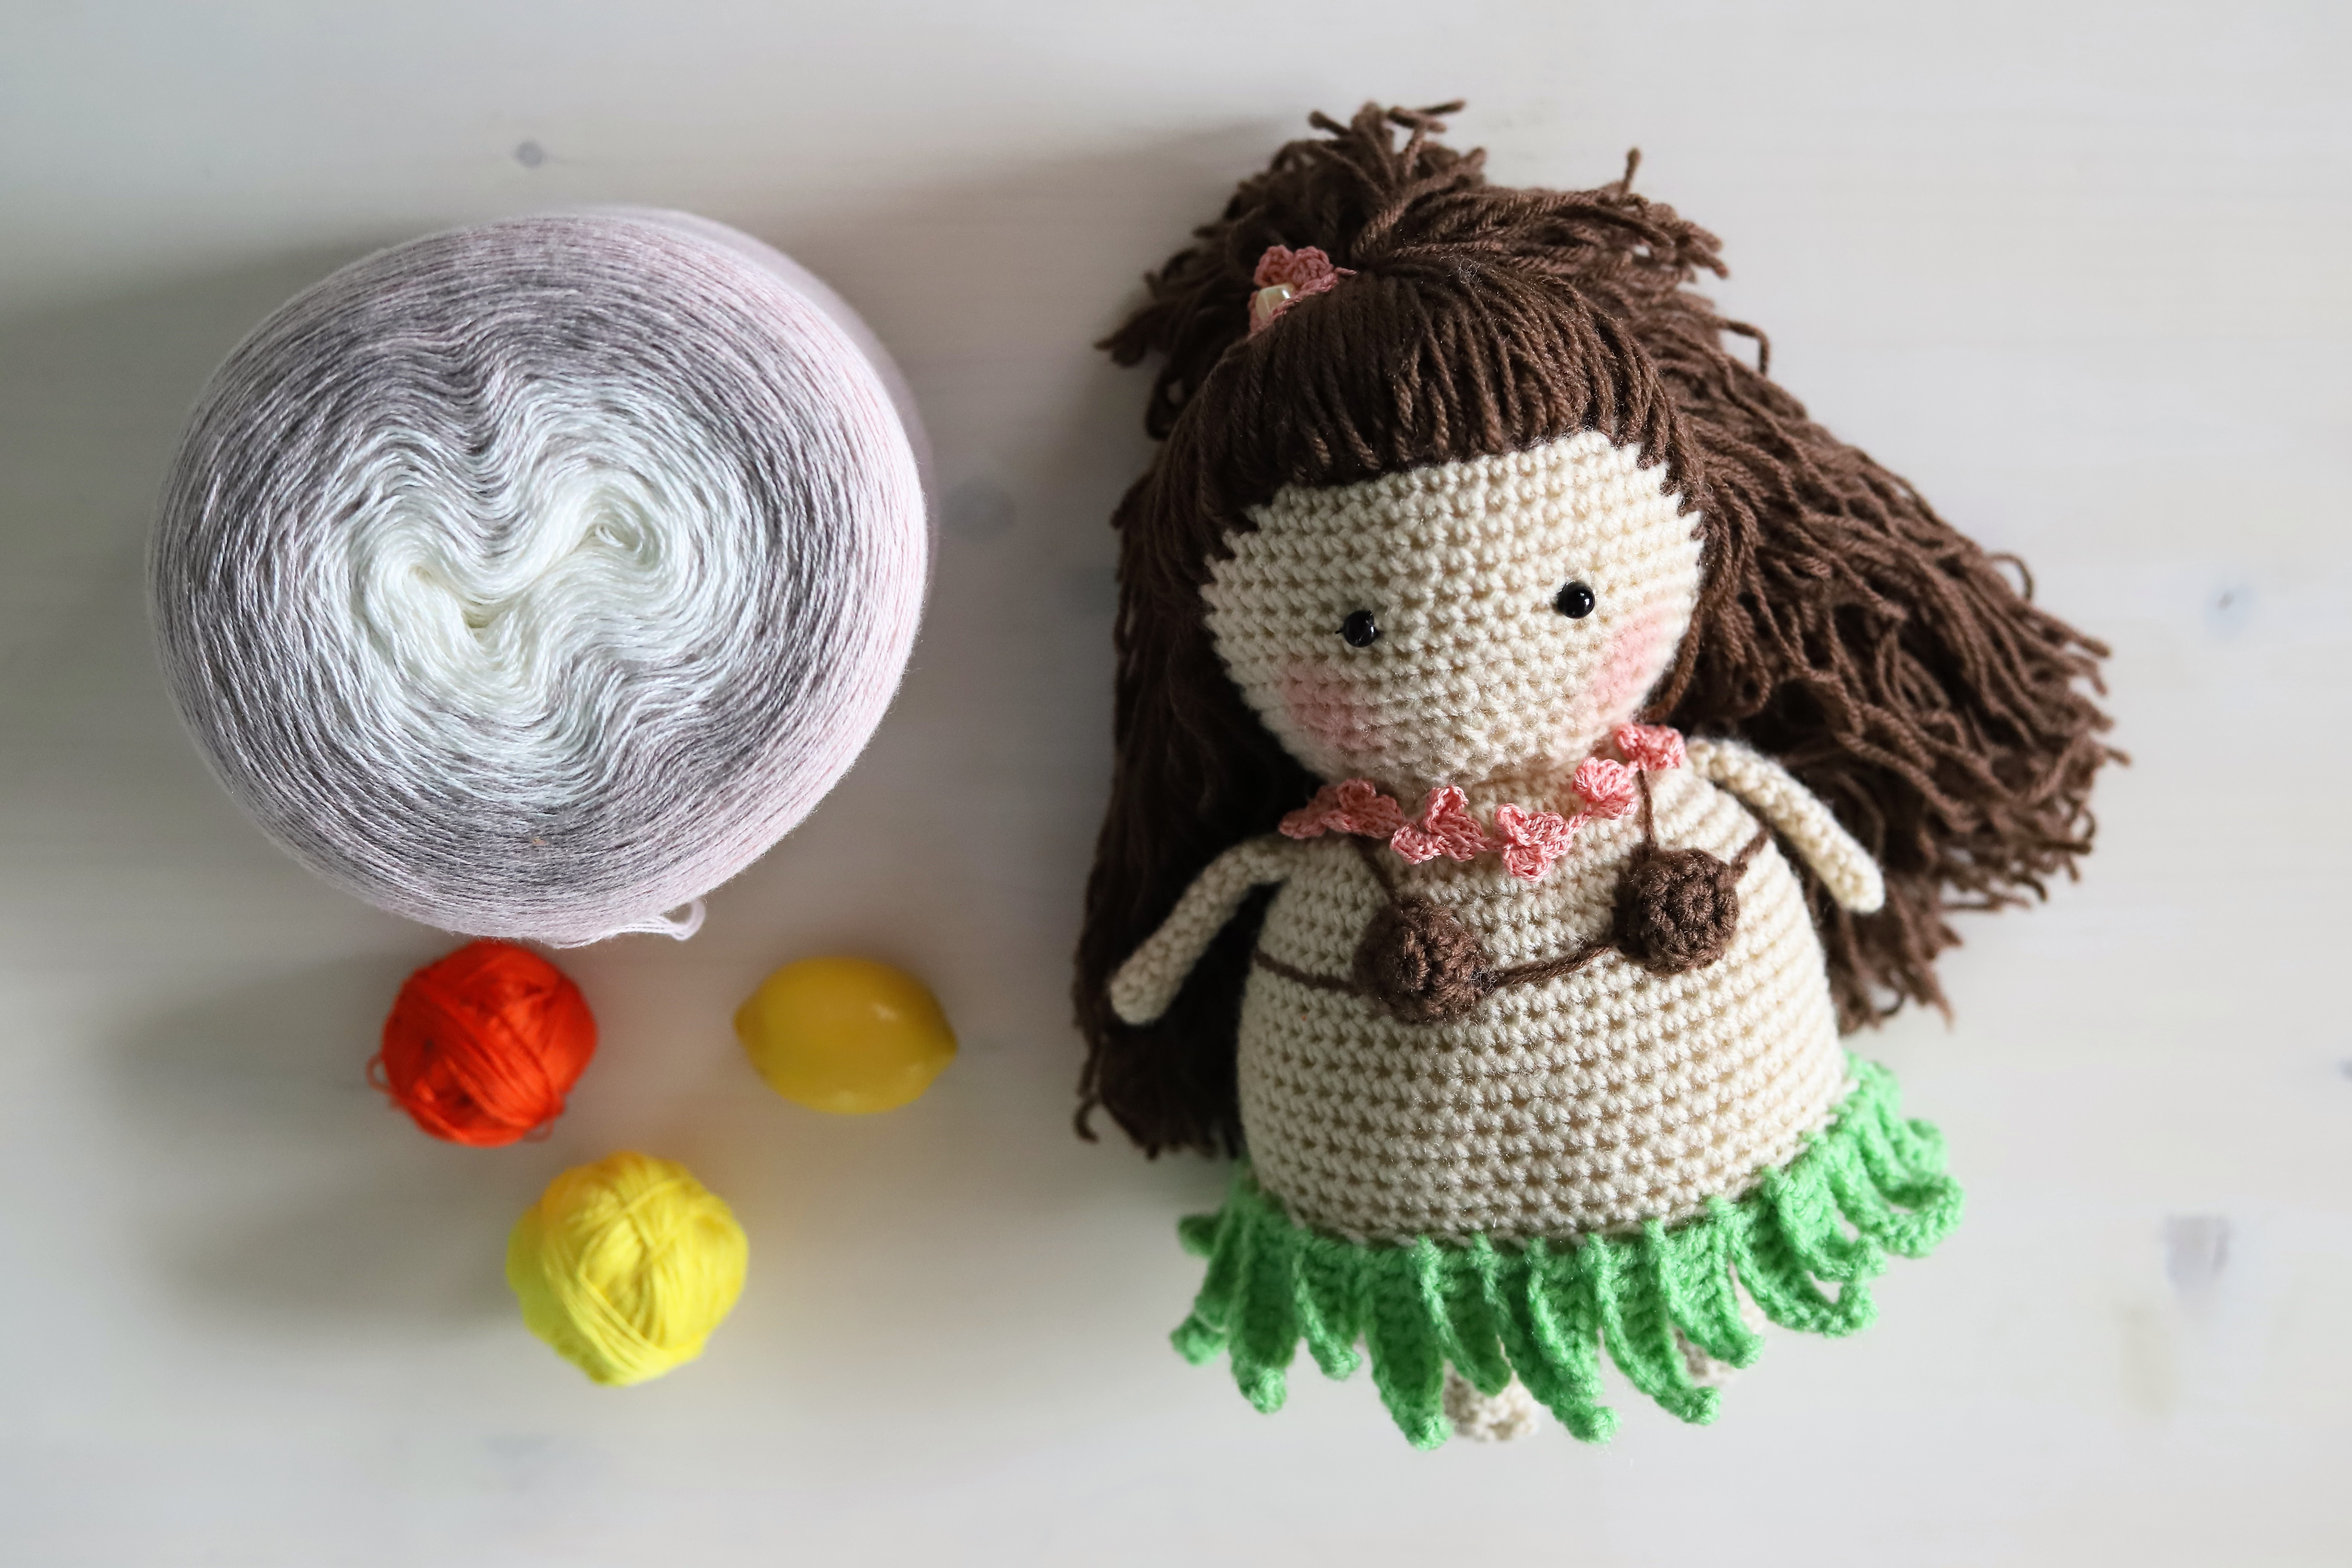 Lani the Hula Girl pattern by Neogurumi | Crochet dolls free ... | 4160x6240